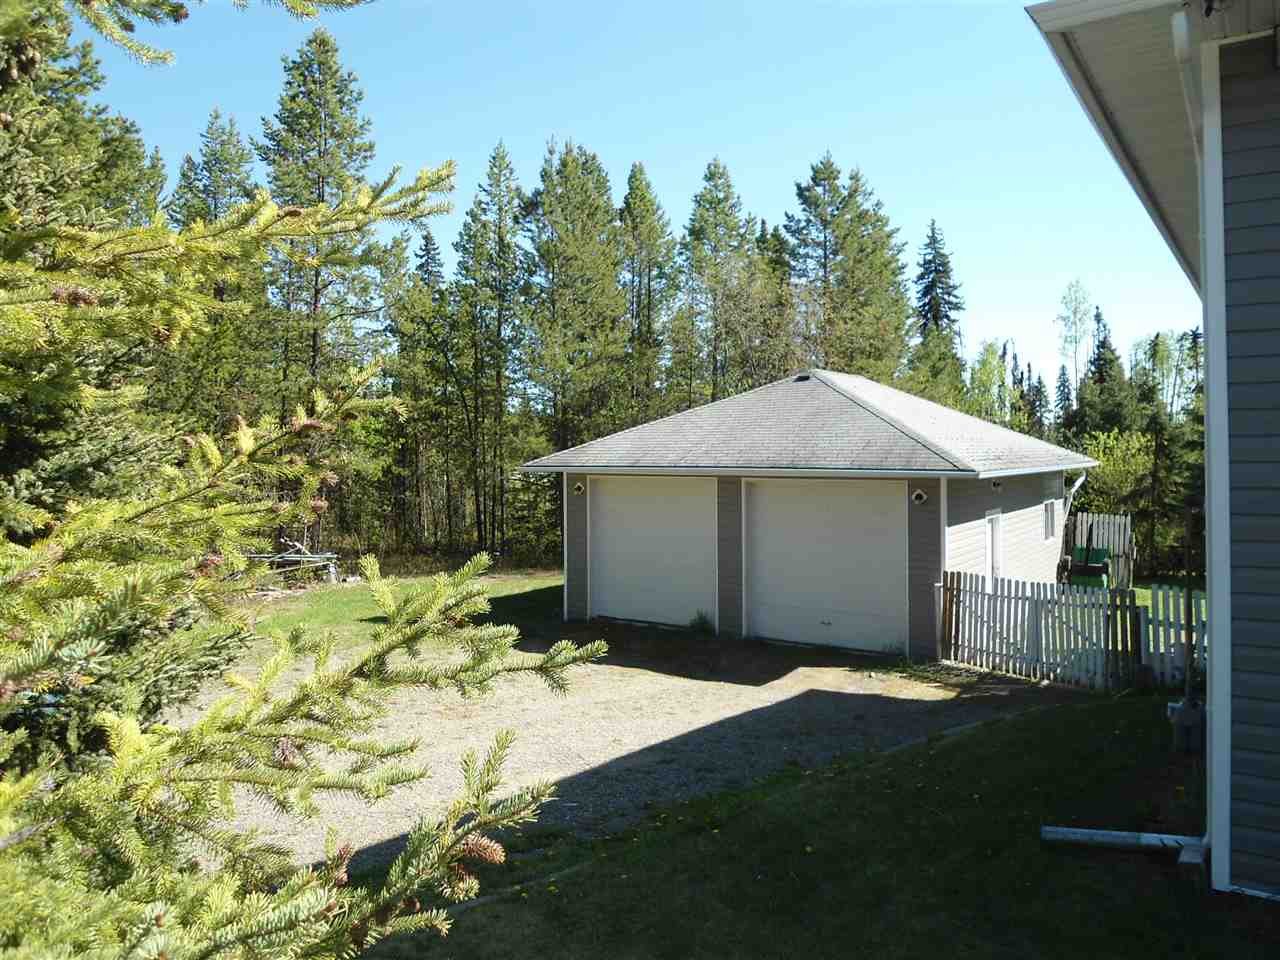 Photo 3: 12935 WOODLAND Road in Prince George: Beaverley House for sale (PG Rural West (Zone 77))  : MLS® # R2064820